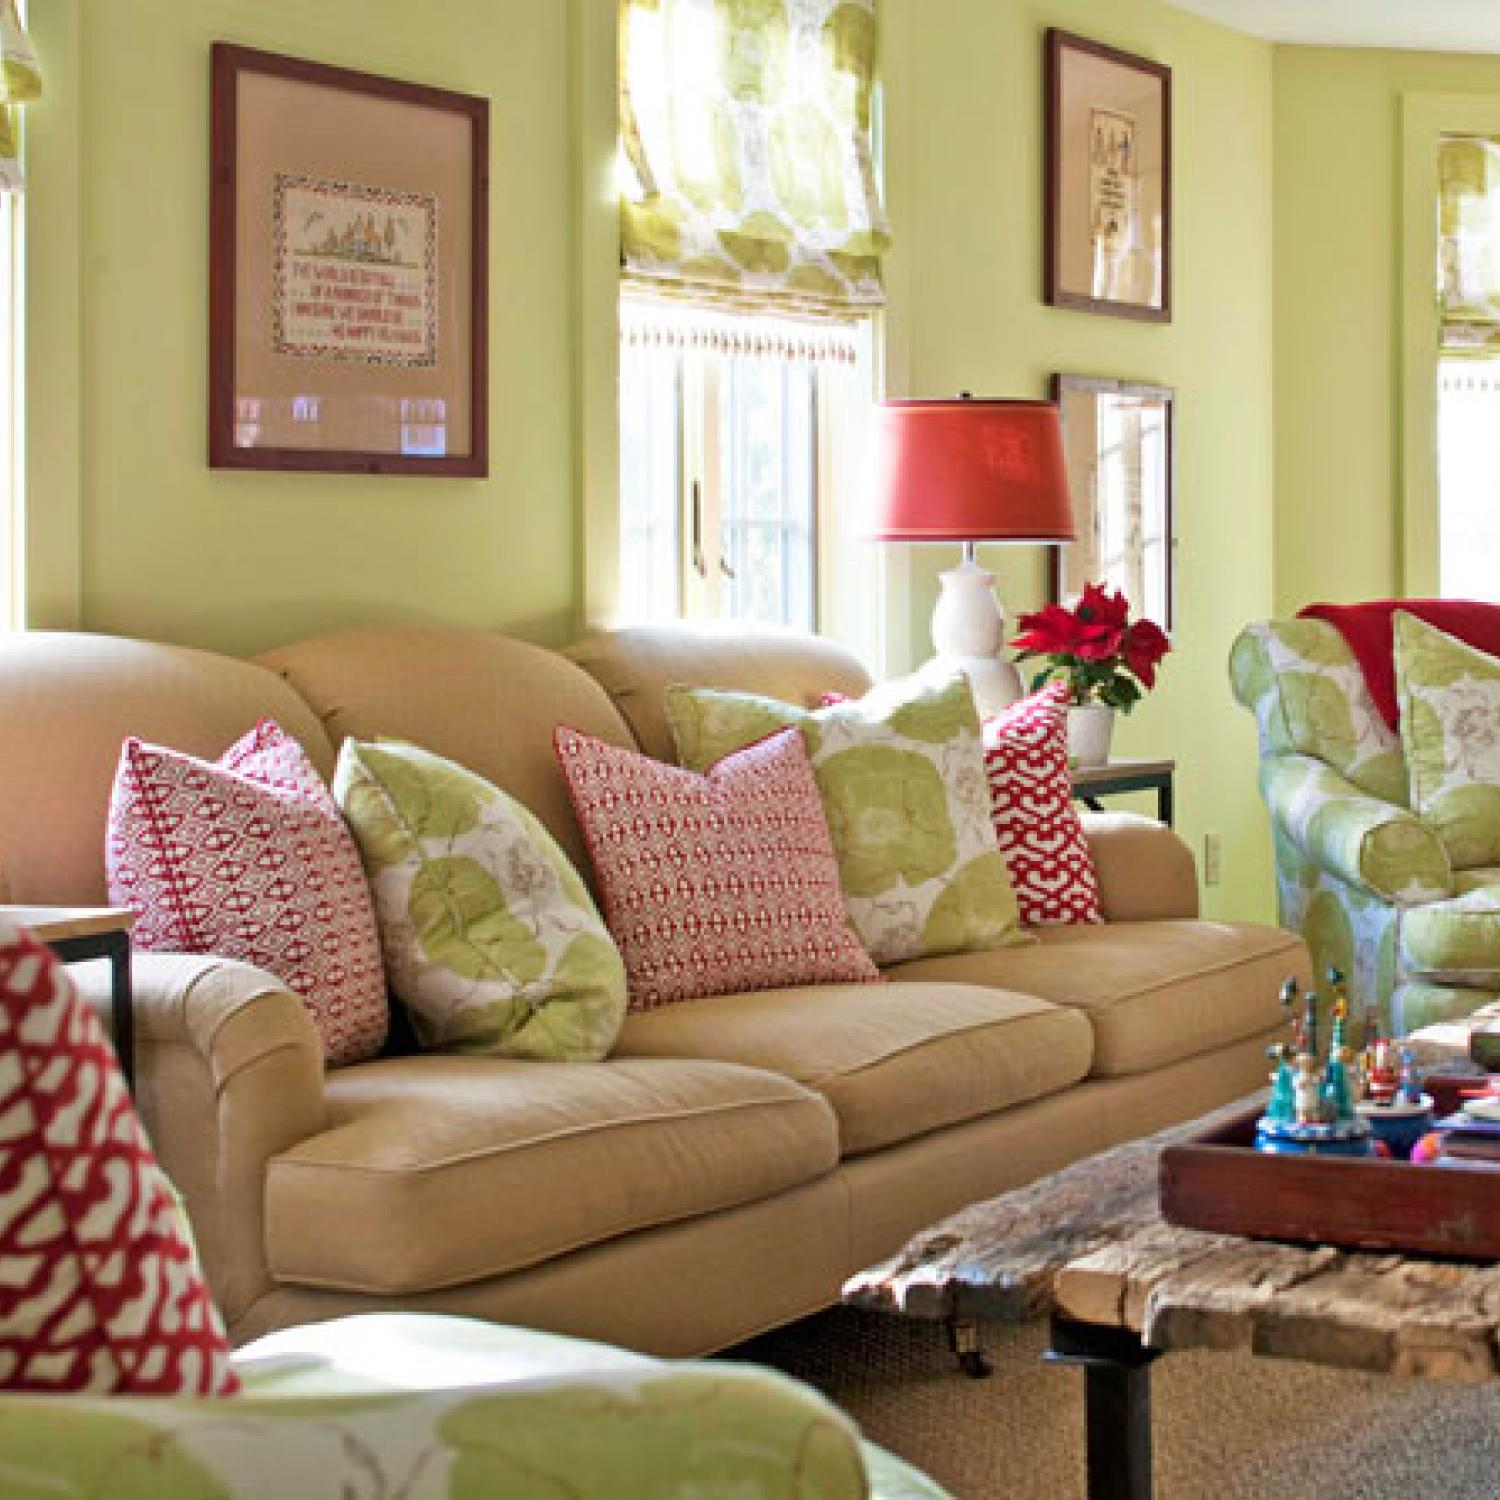 26 Interesting Living Room Décor Ideas Definitive Guide: Classic Red & Green